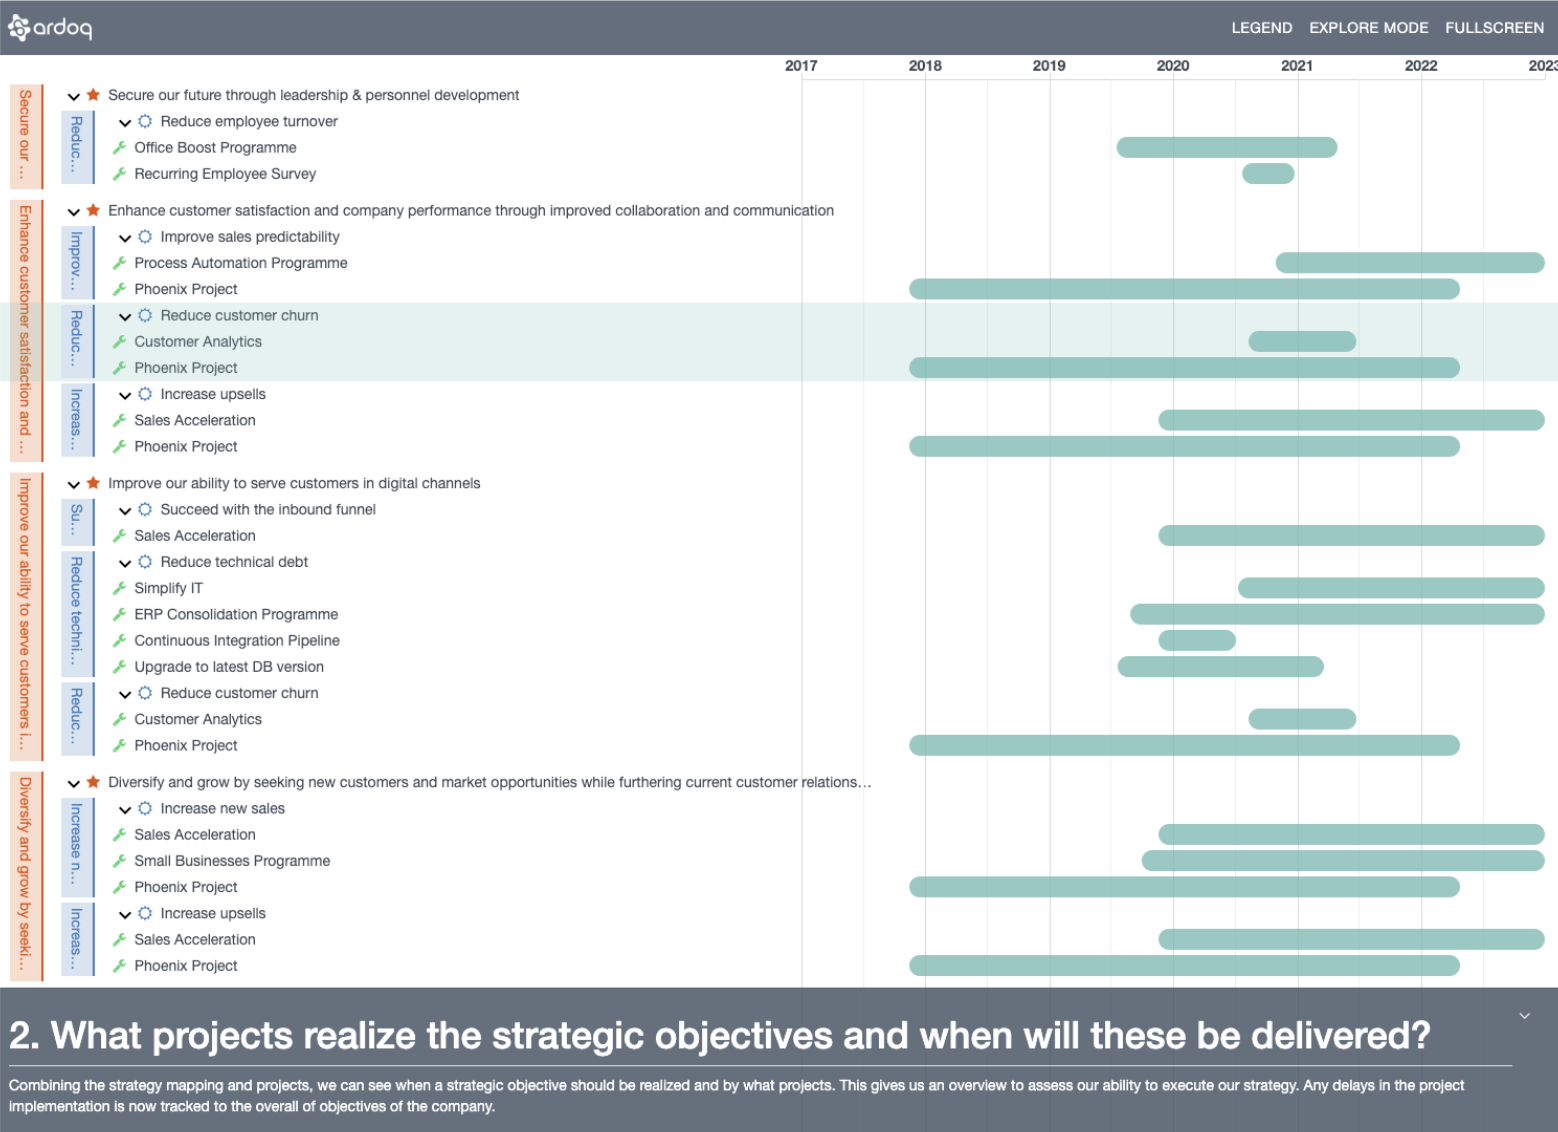 Timeline visualization with all projects grouped under their objectives and related strategies.